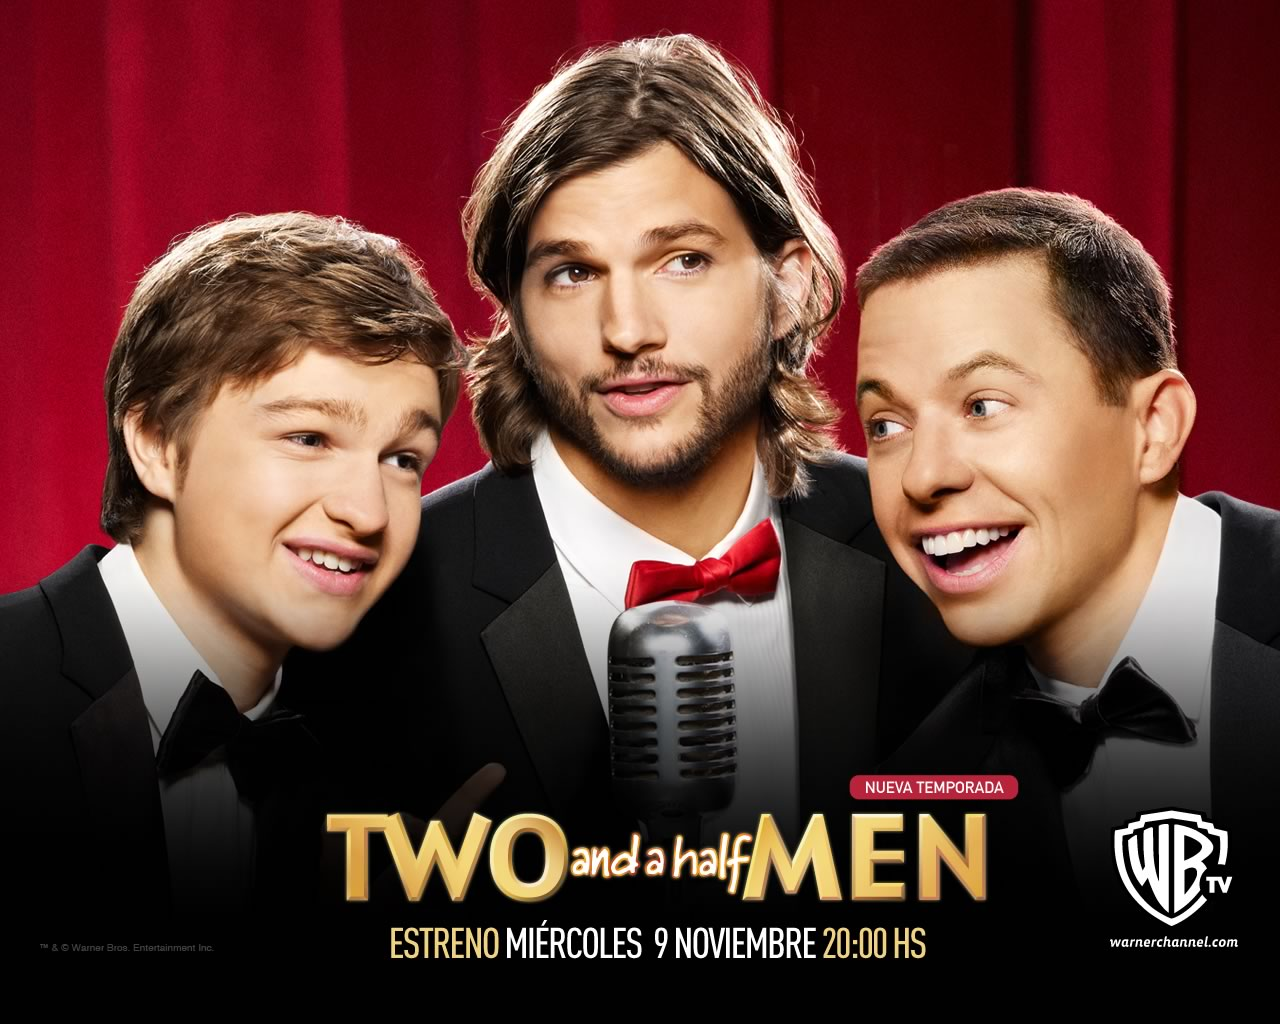 two-and-a-half-men.jpg (1280×1024)